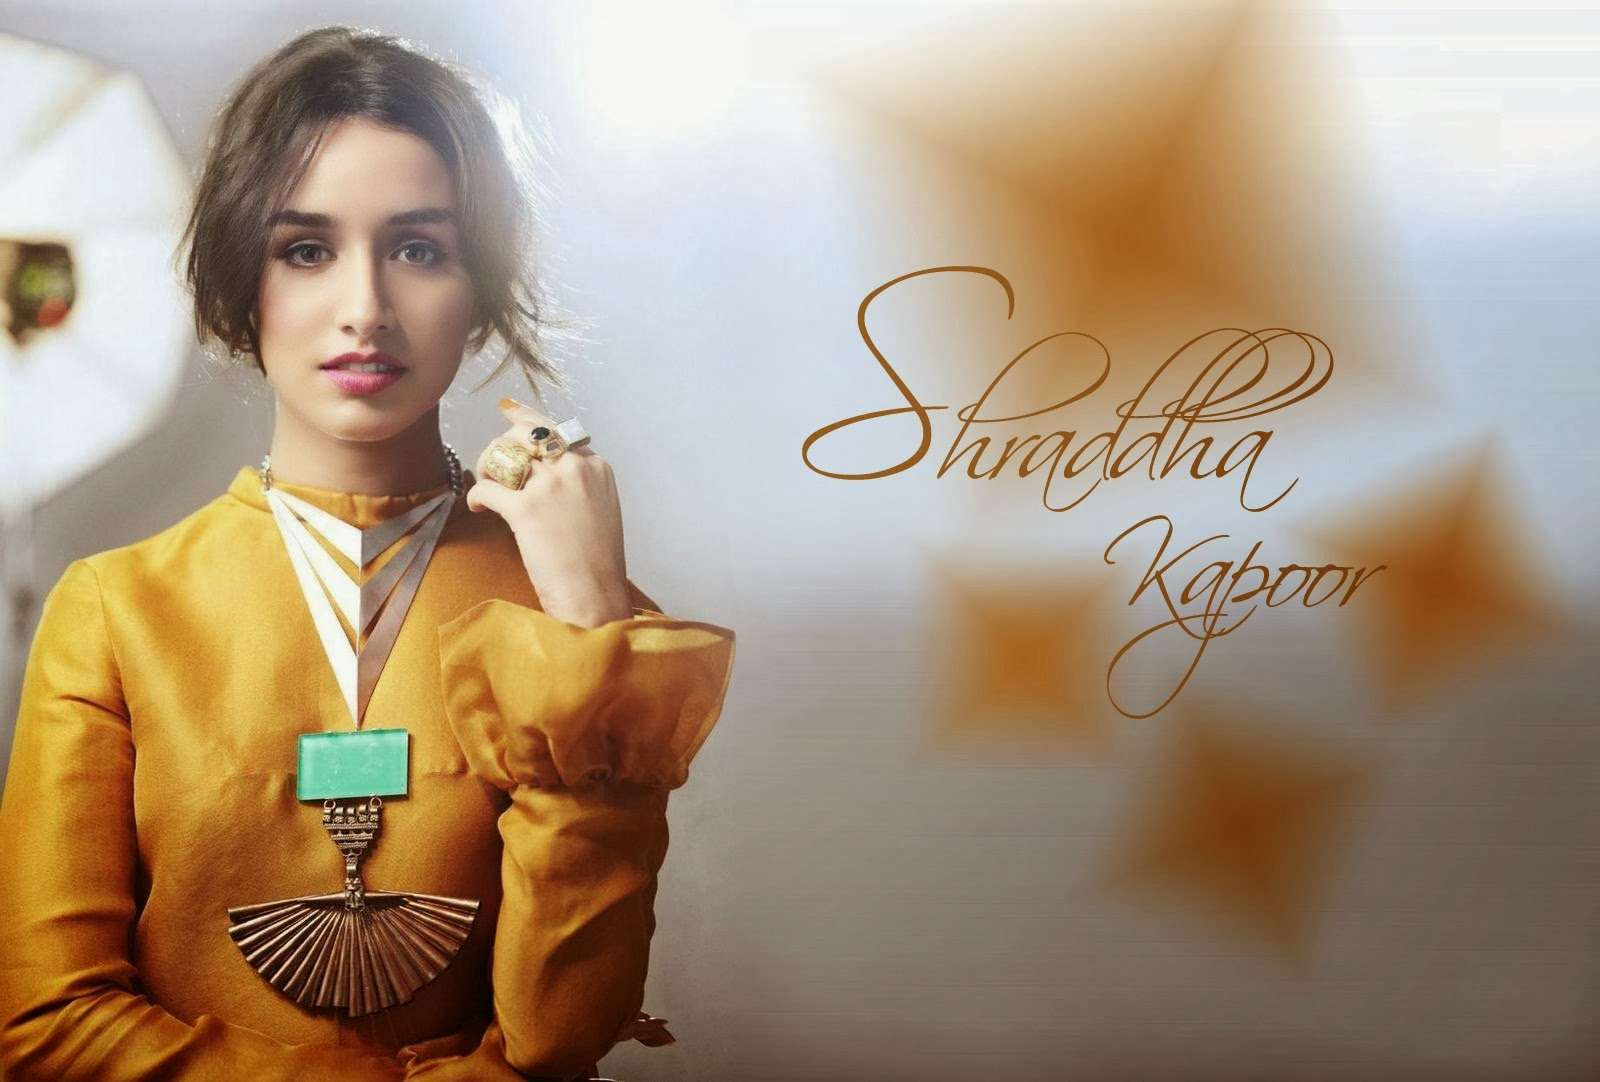 Cute Face Shraddha Kapoor Wallpaper  Download 1600x1082